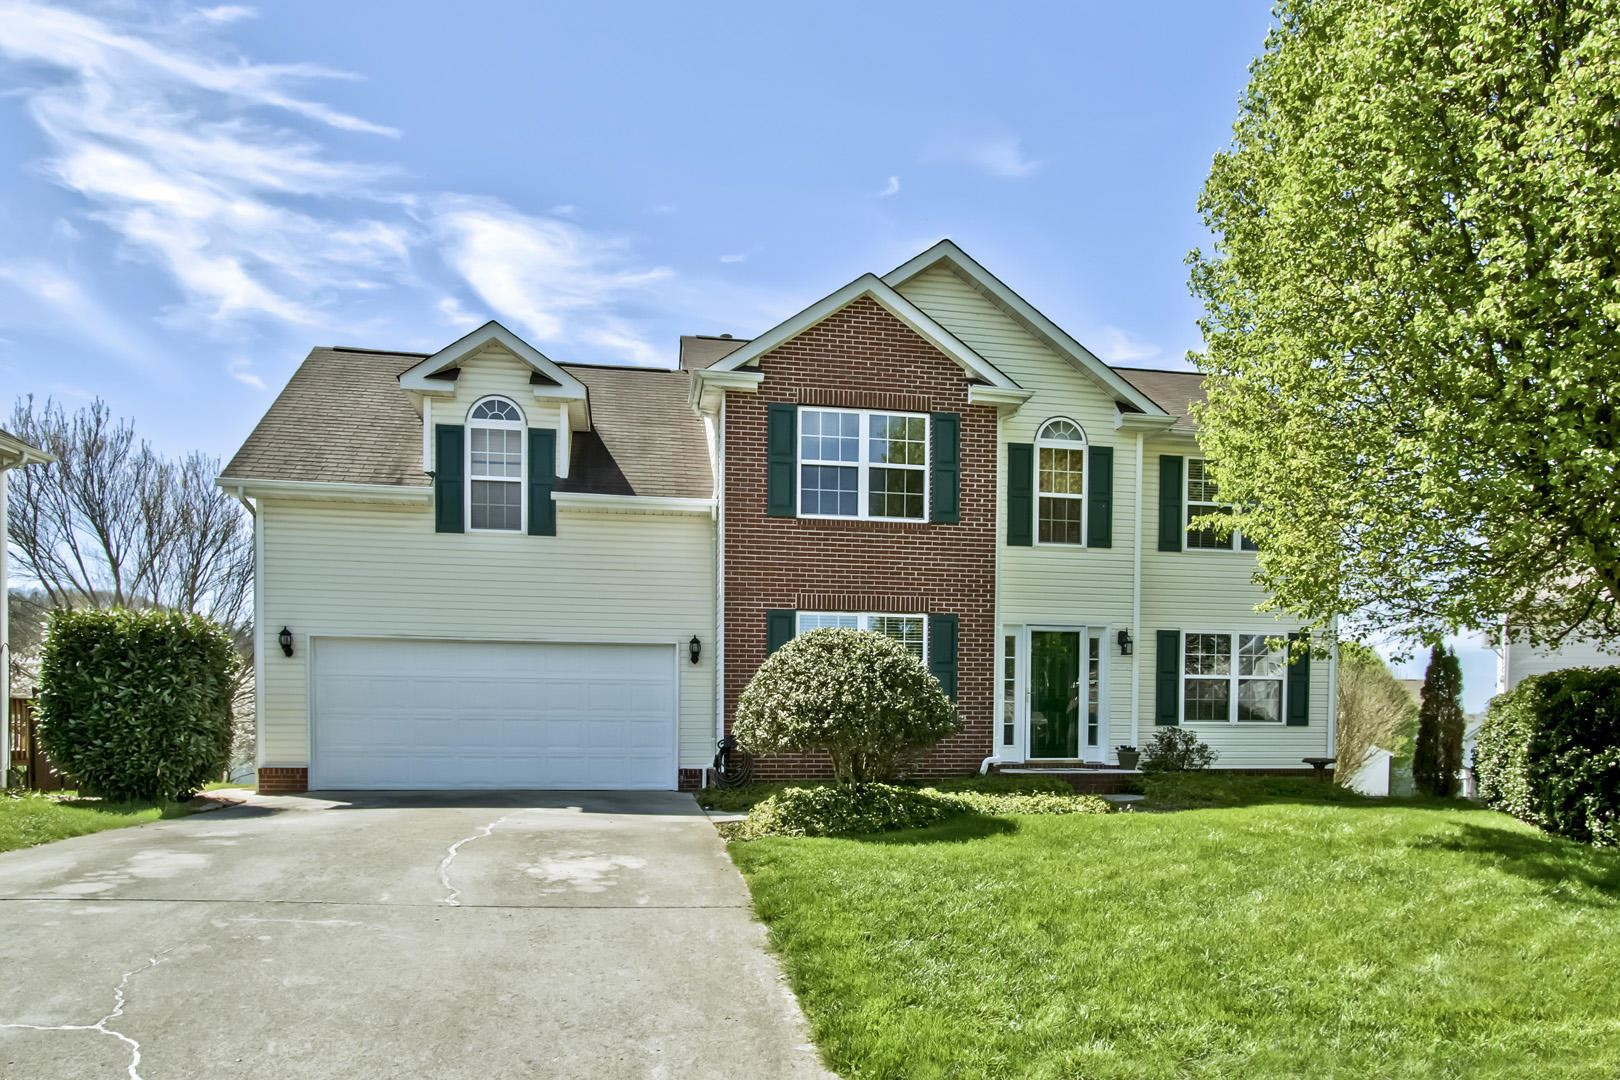 Photo of 4611 Sand Hill Lane, Knoxville, TN 37918 (MLS # 1112048)